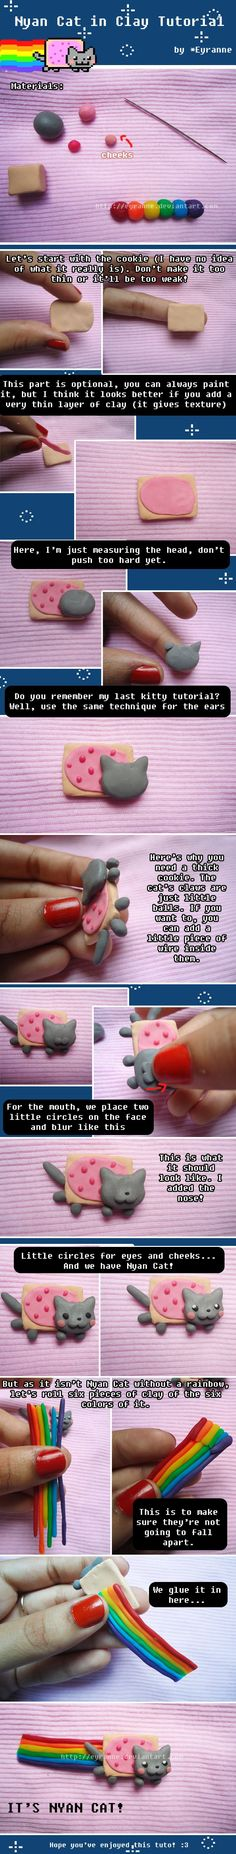 Kawaii Nyan Nyan Cat Charm / DIY Clay just add a broach backing and you will have yourself a kick ass broach!: